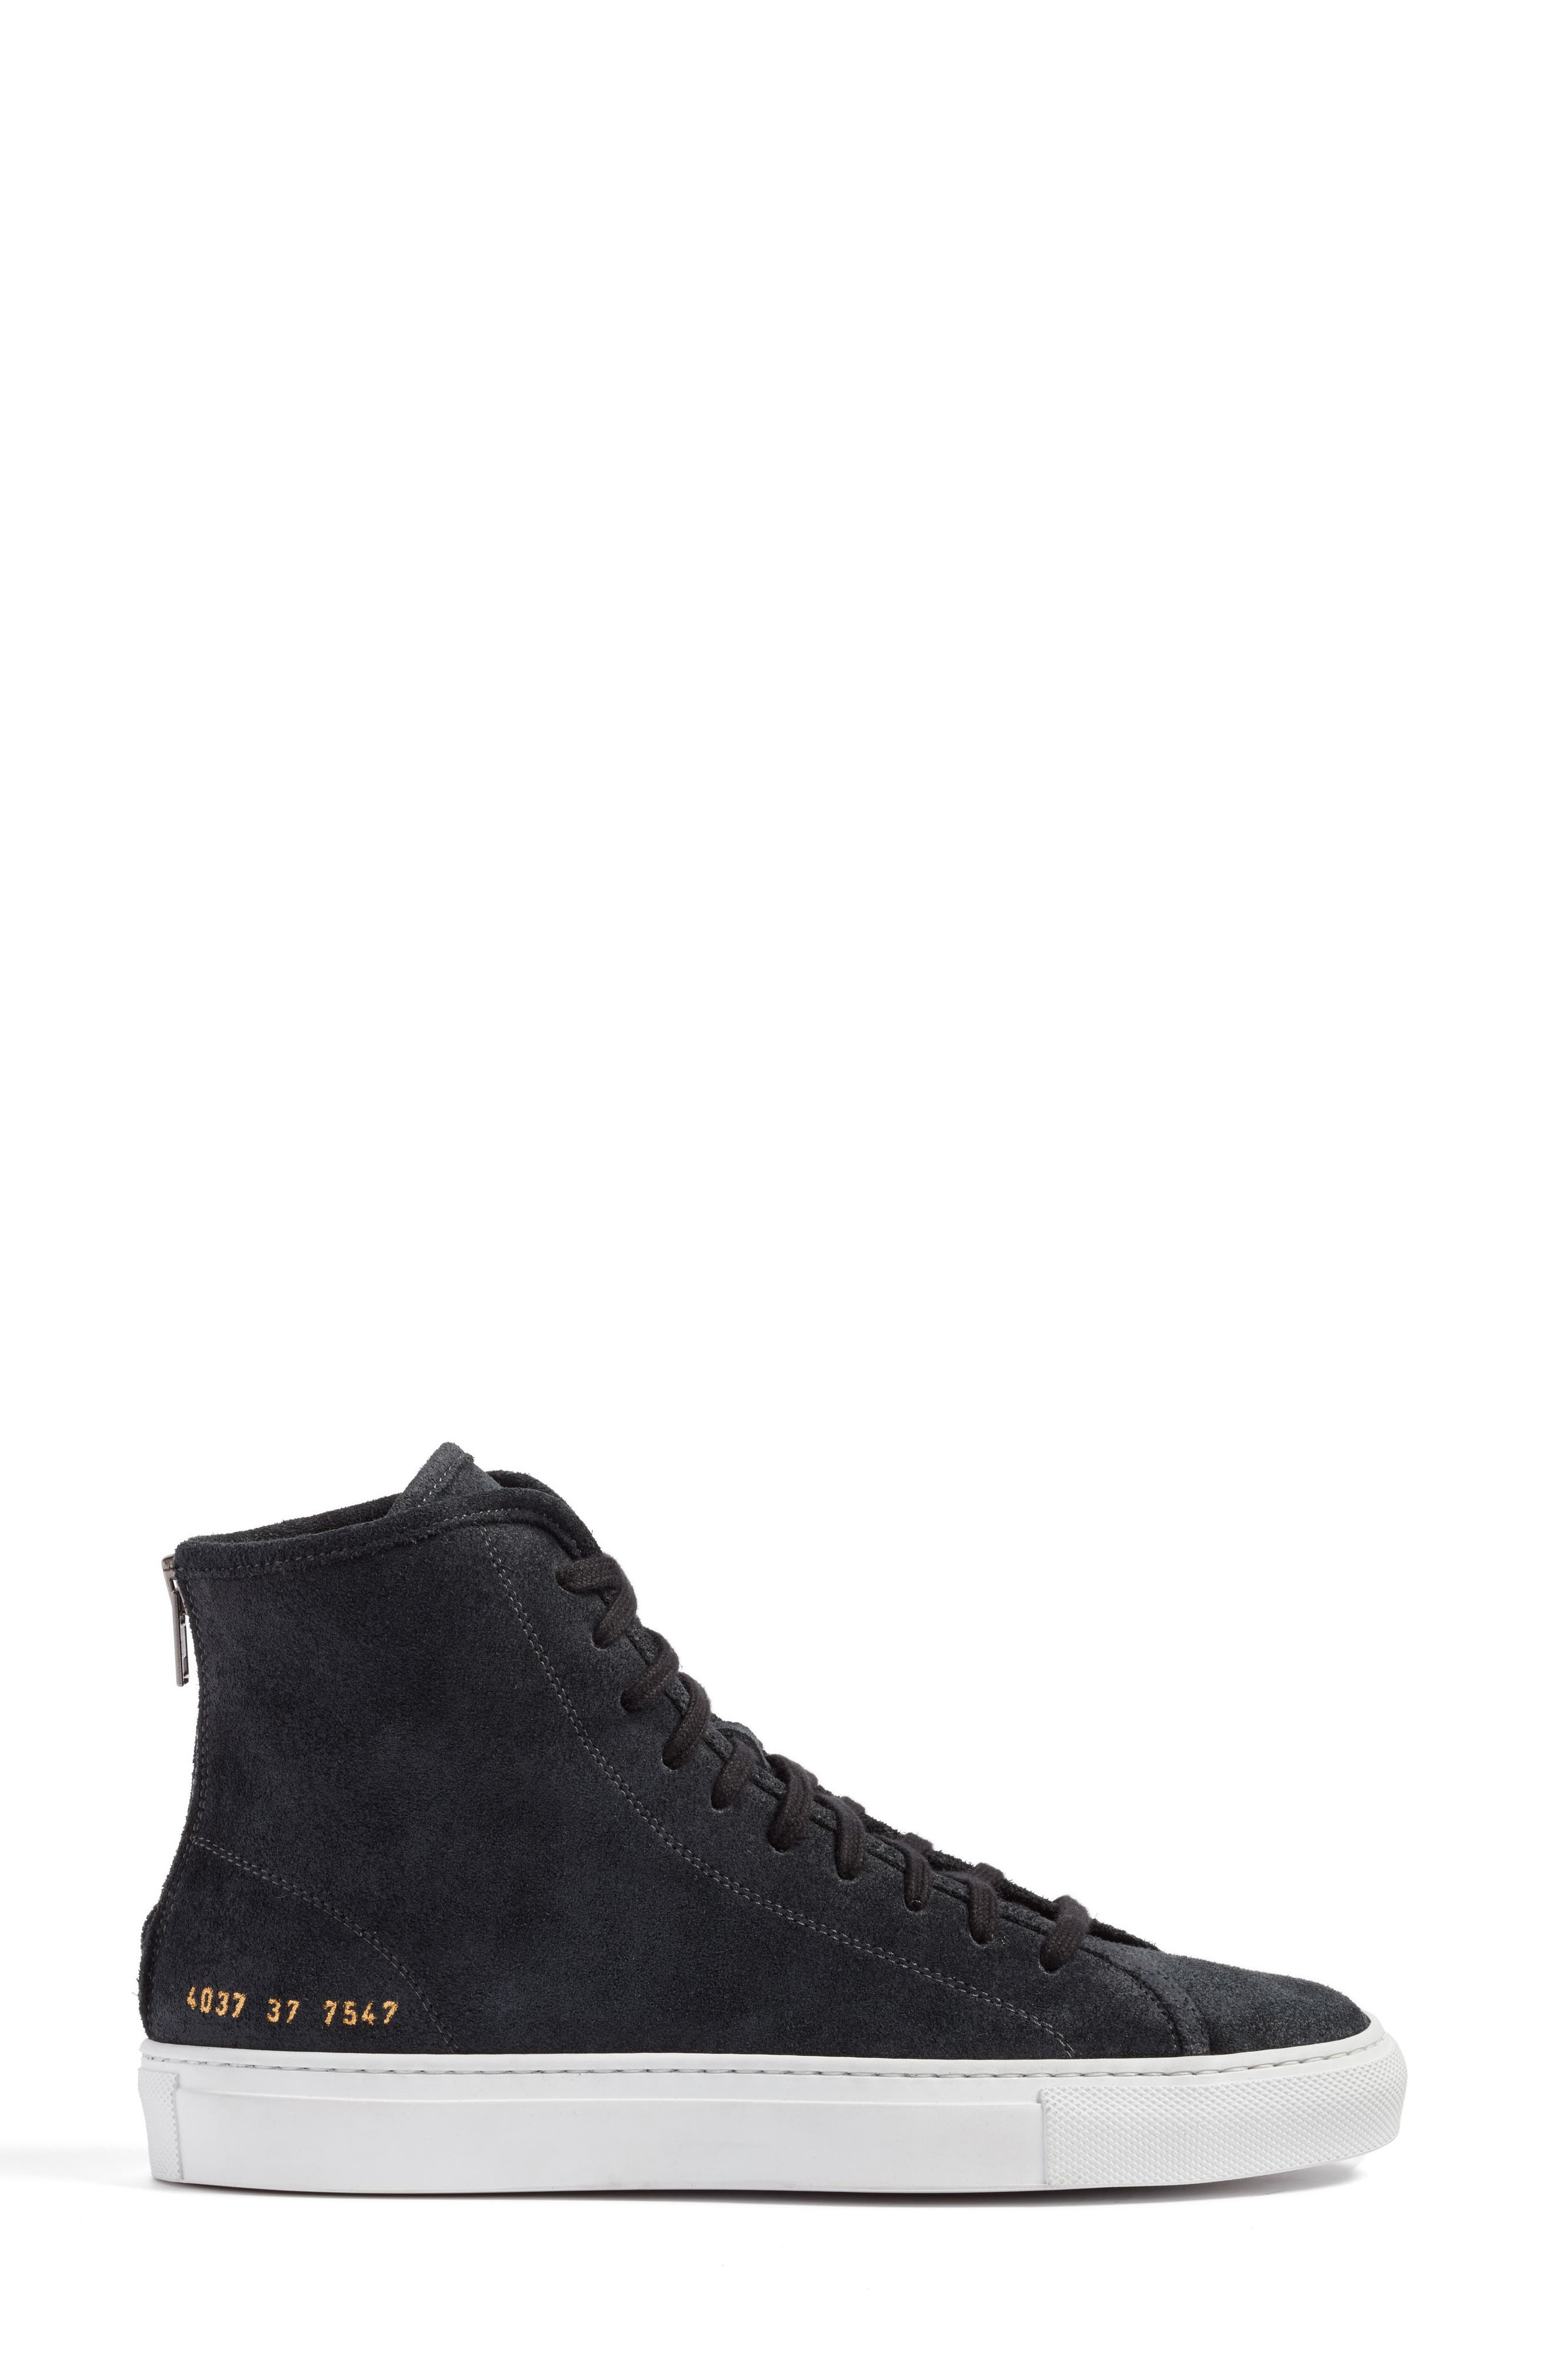 Alternate Image 3  - Common Projects Tournament High Top Sneakers (Women)